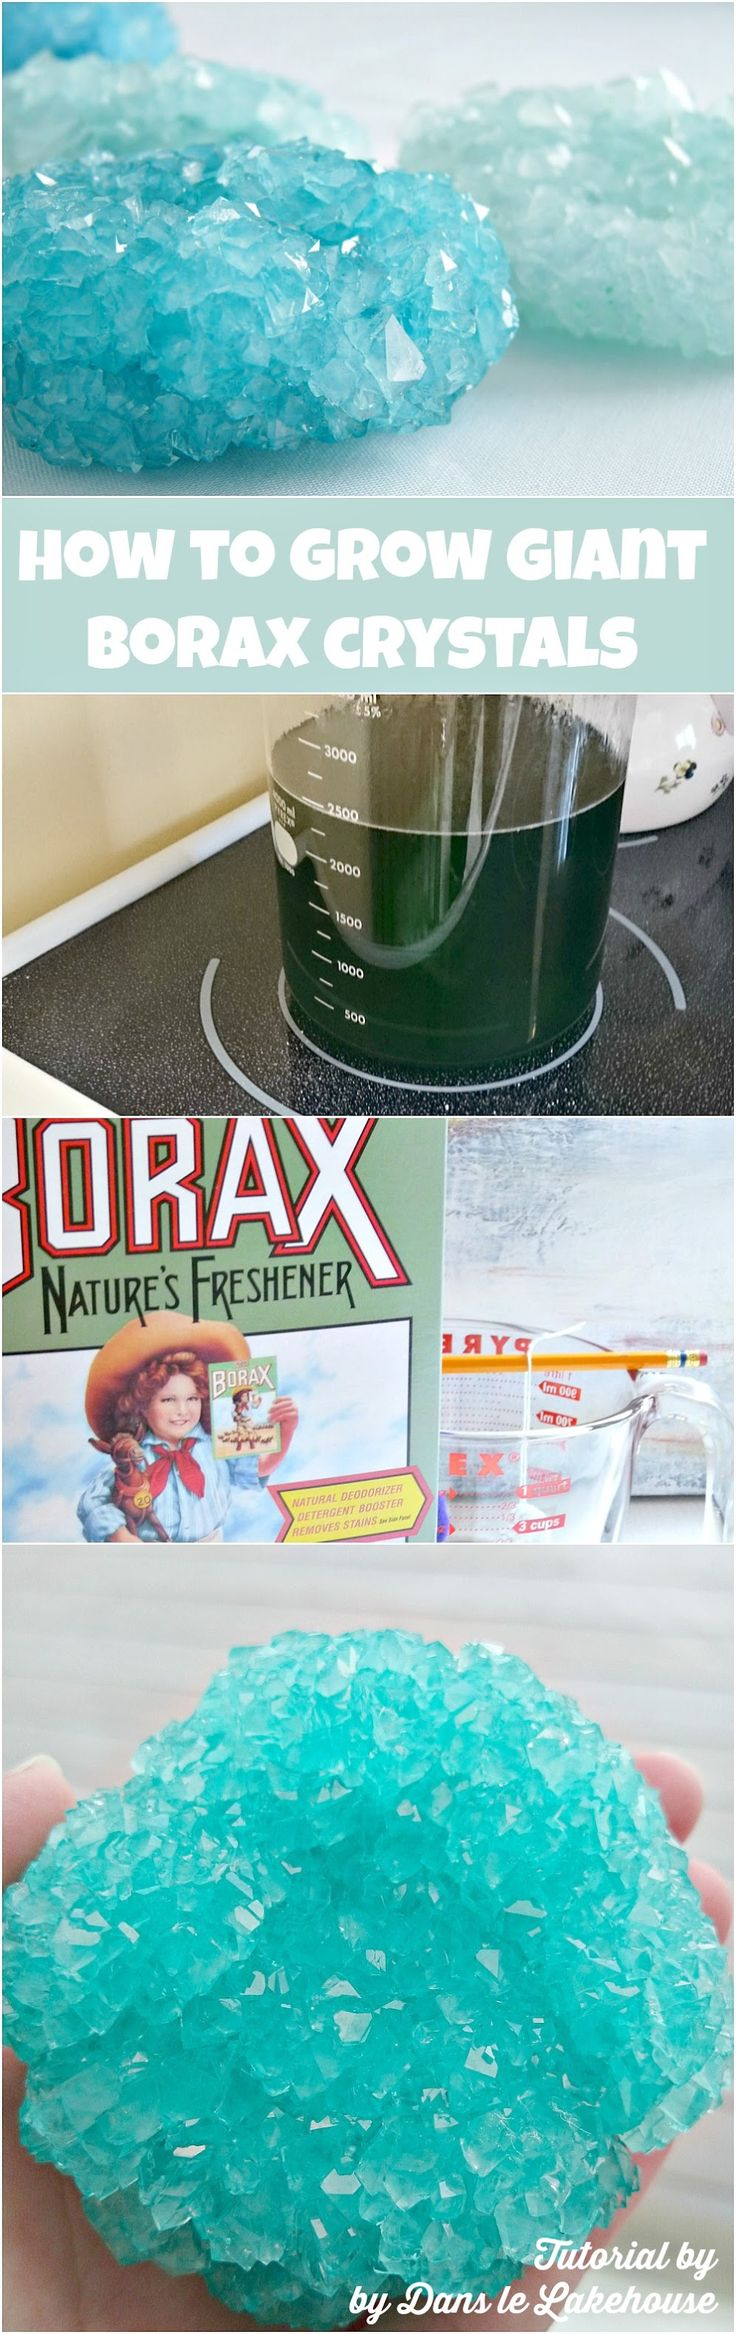 How to grow giant borax crystals